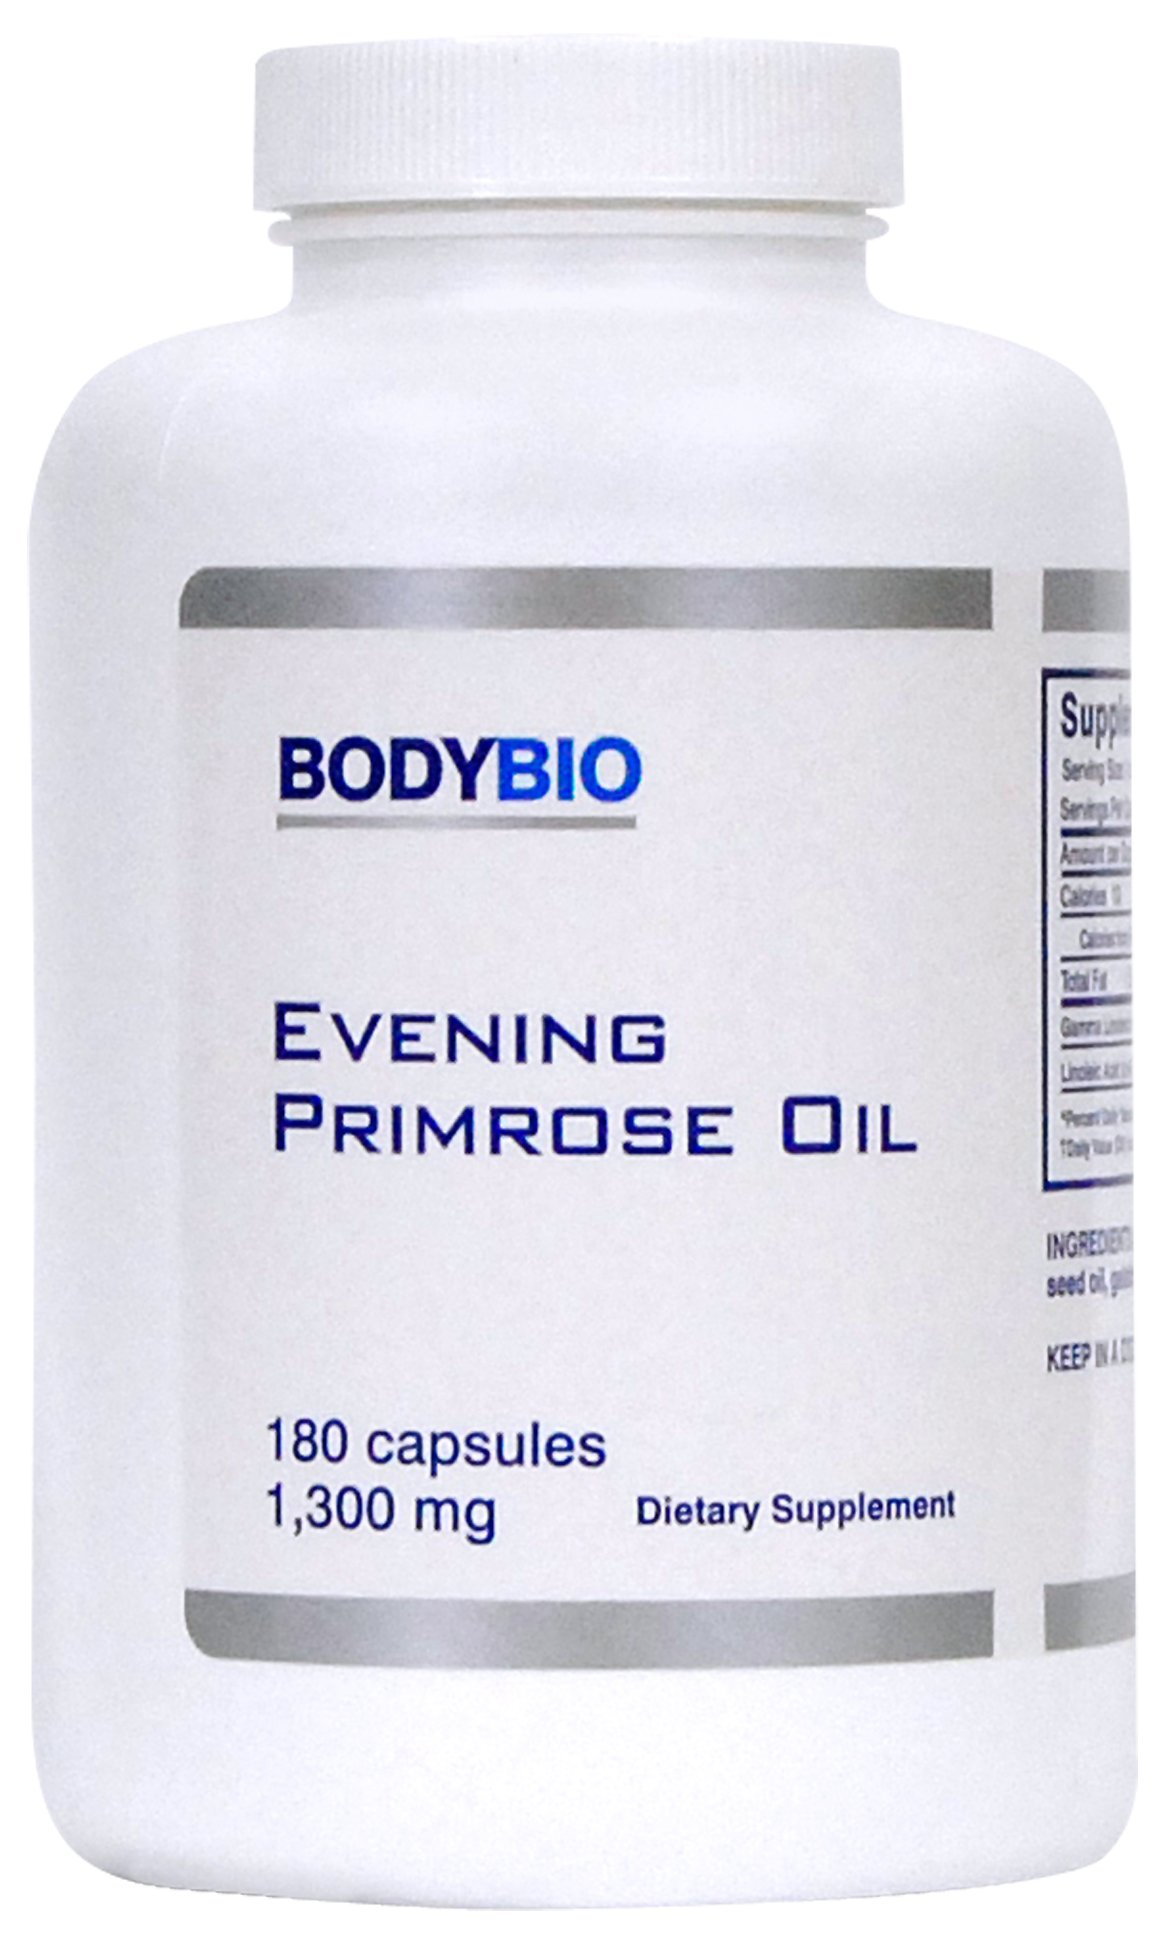 BodyBio - Evening Primrose Oil for Healthy Skin, Immune Support & Hormone Balance. Non-GMO, Cold Pressed - 1300mg, 180 Softgels by BodyBio